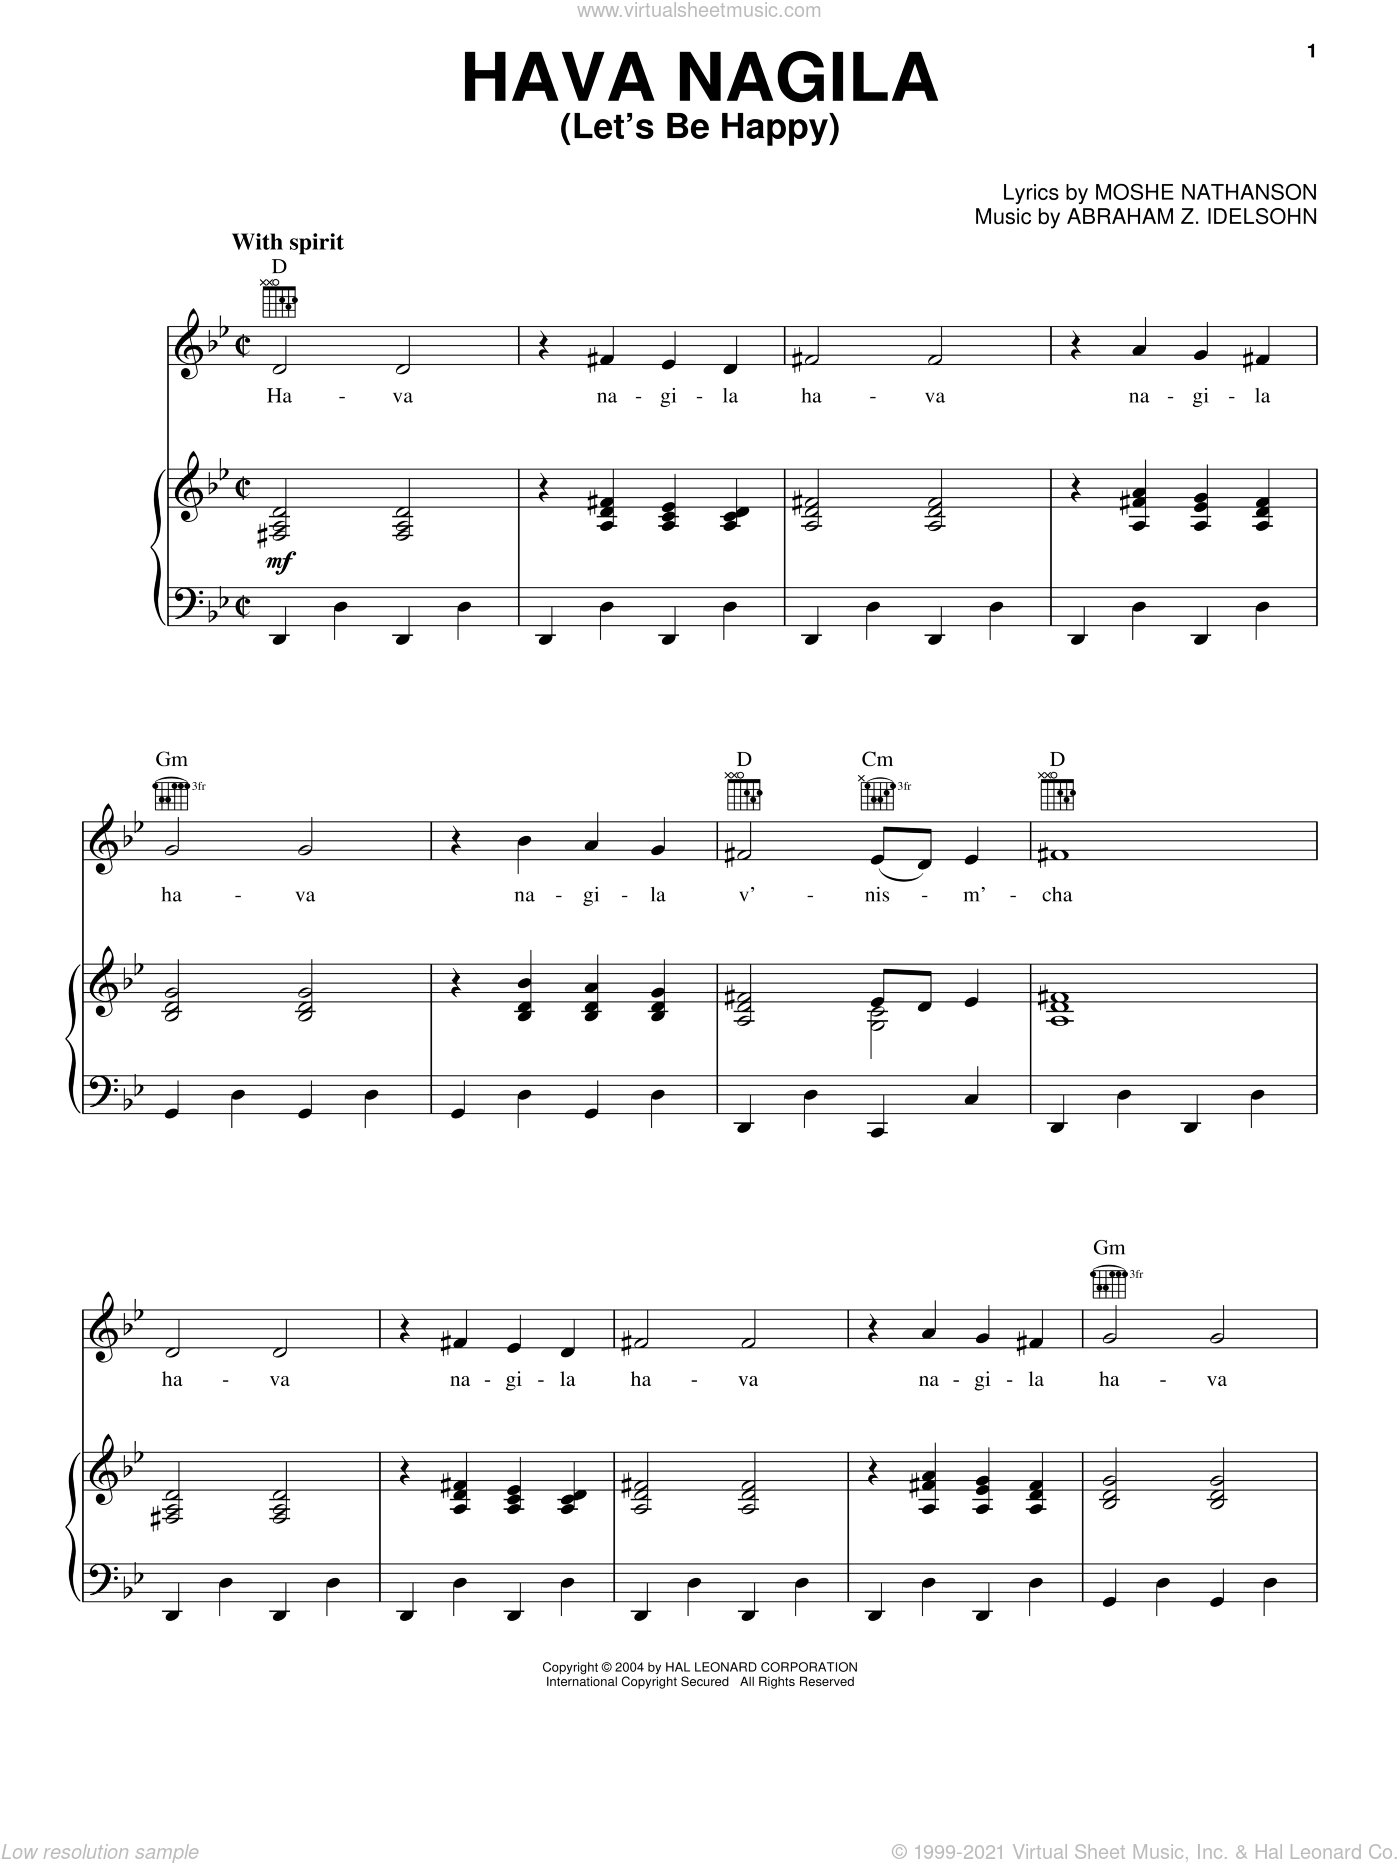 Hava Nagila (Let's Be Happy) sheet music for voice, piano or guitar by Moshe Nathanson and Abraham Z. Idelsohn, intermediate skill level